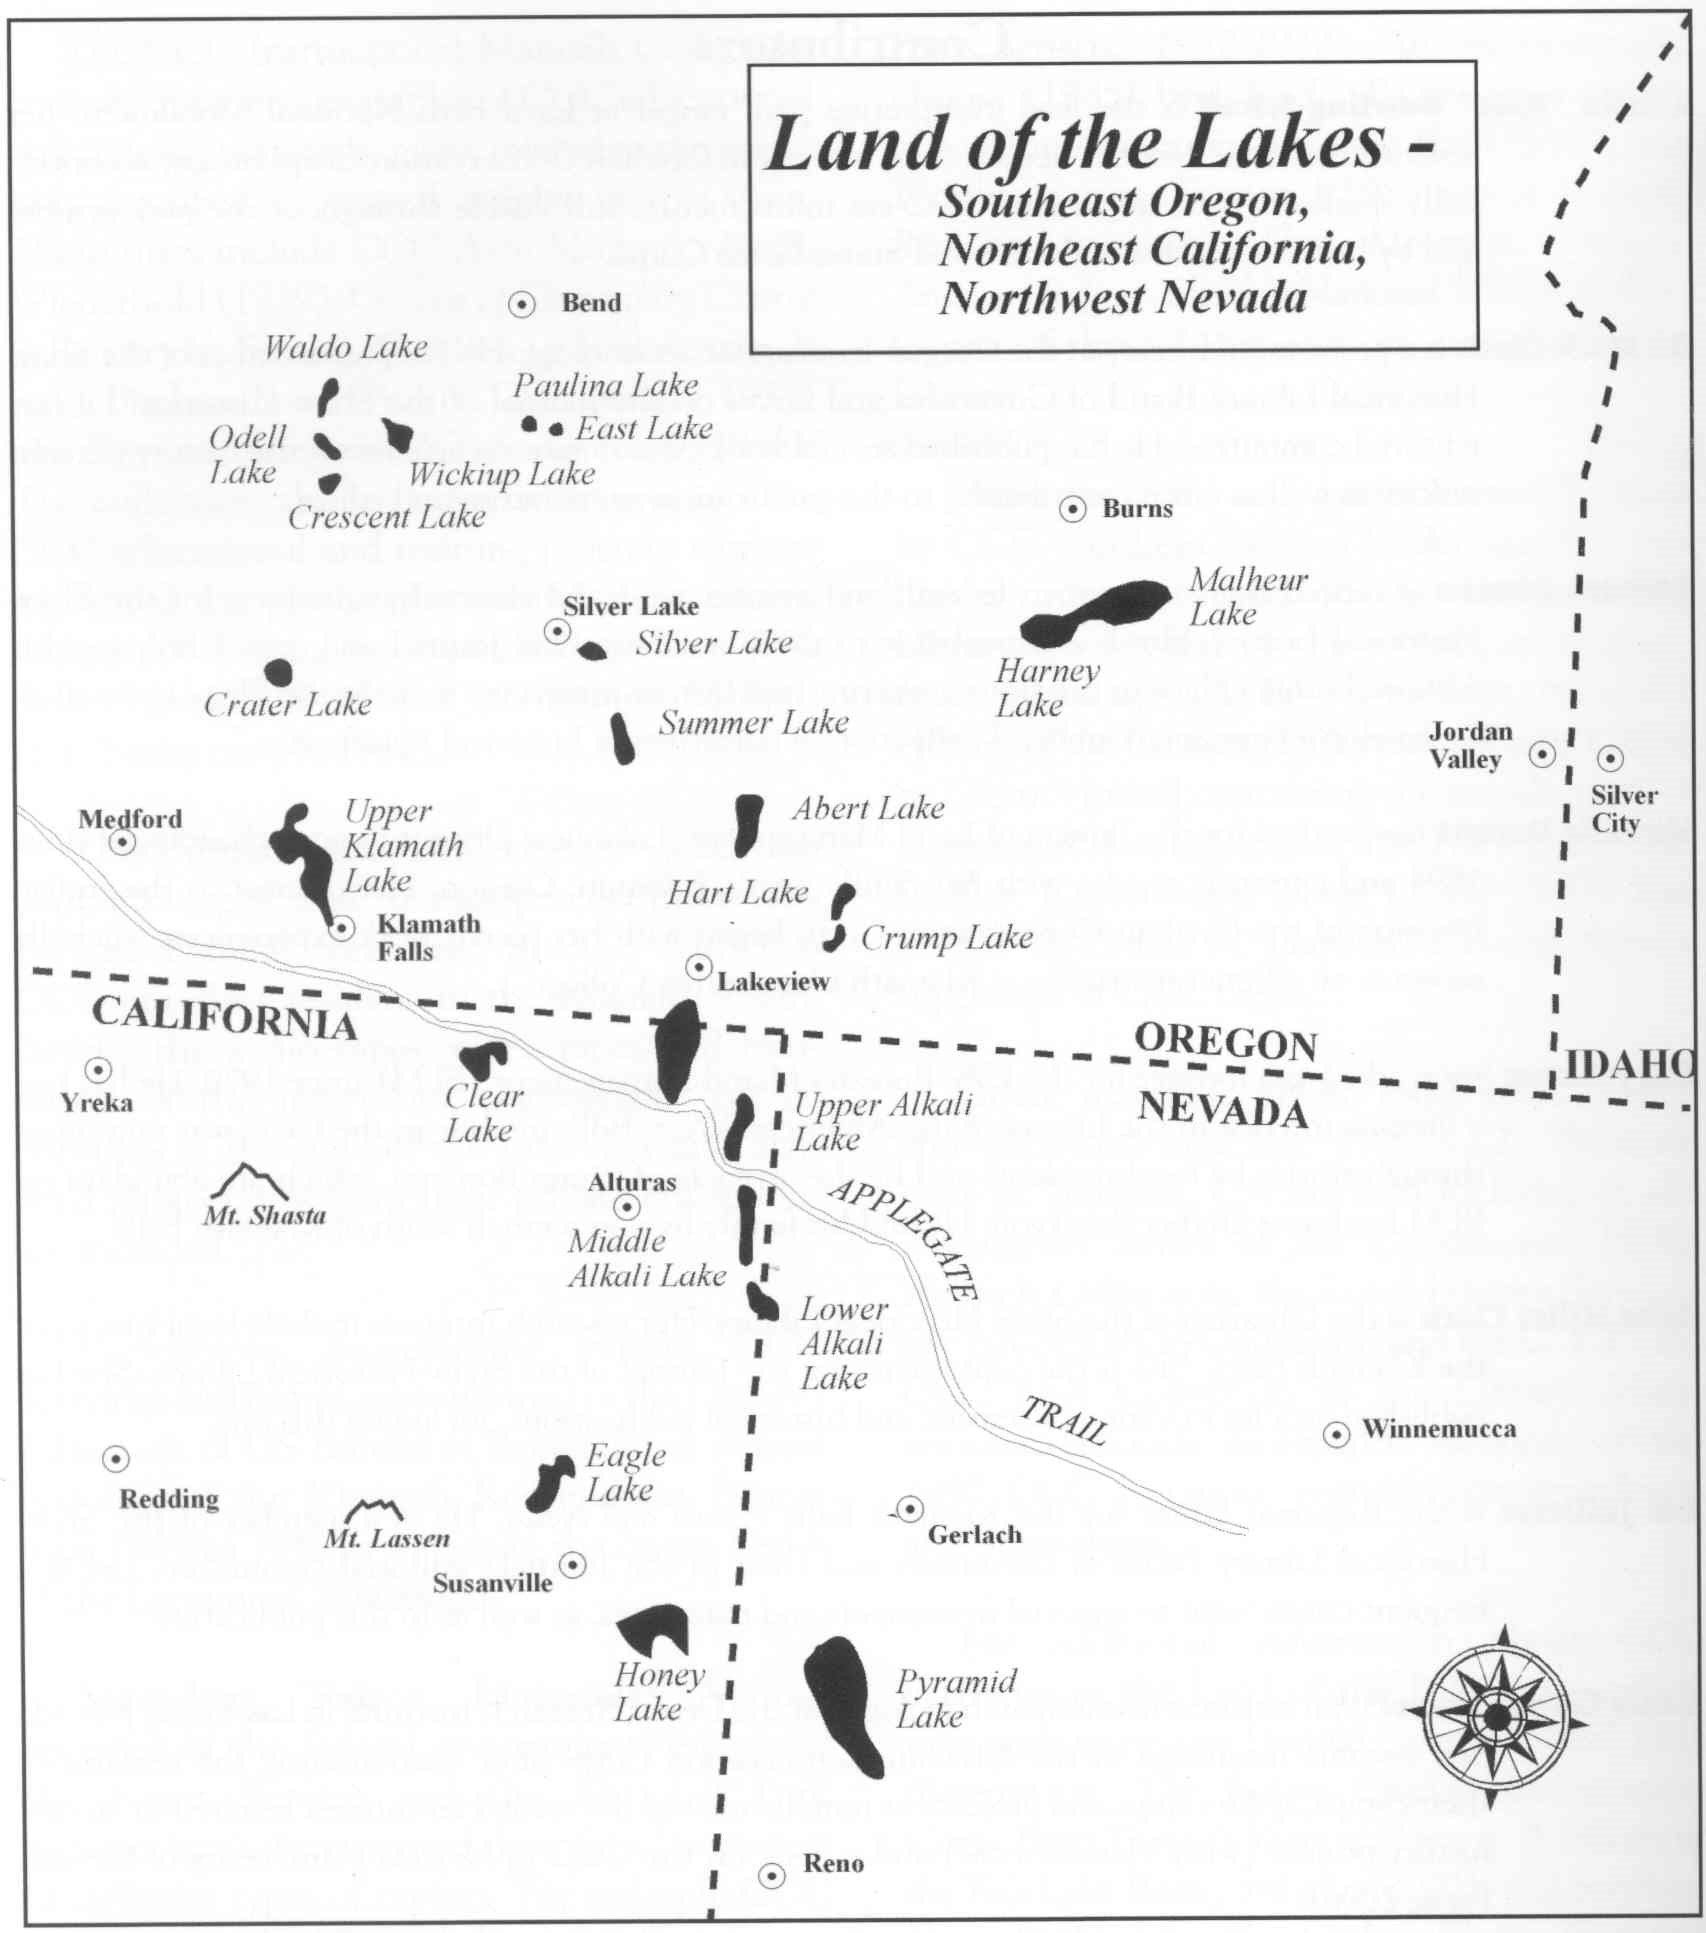 Land of the Lakes area